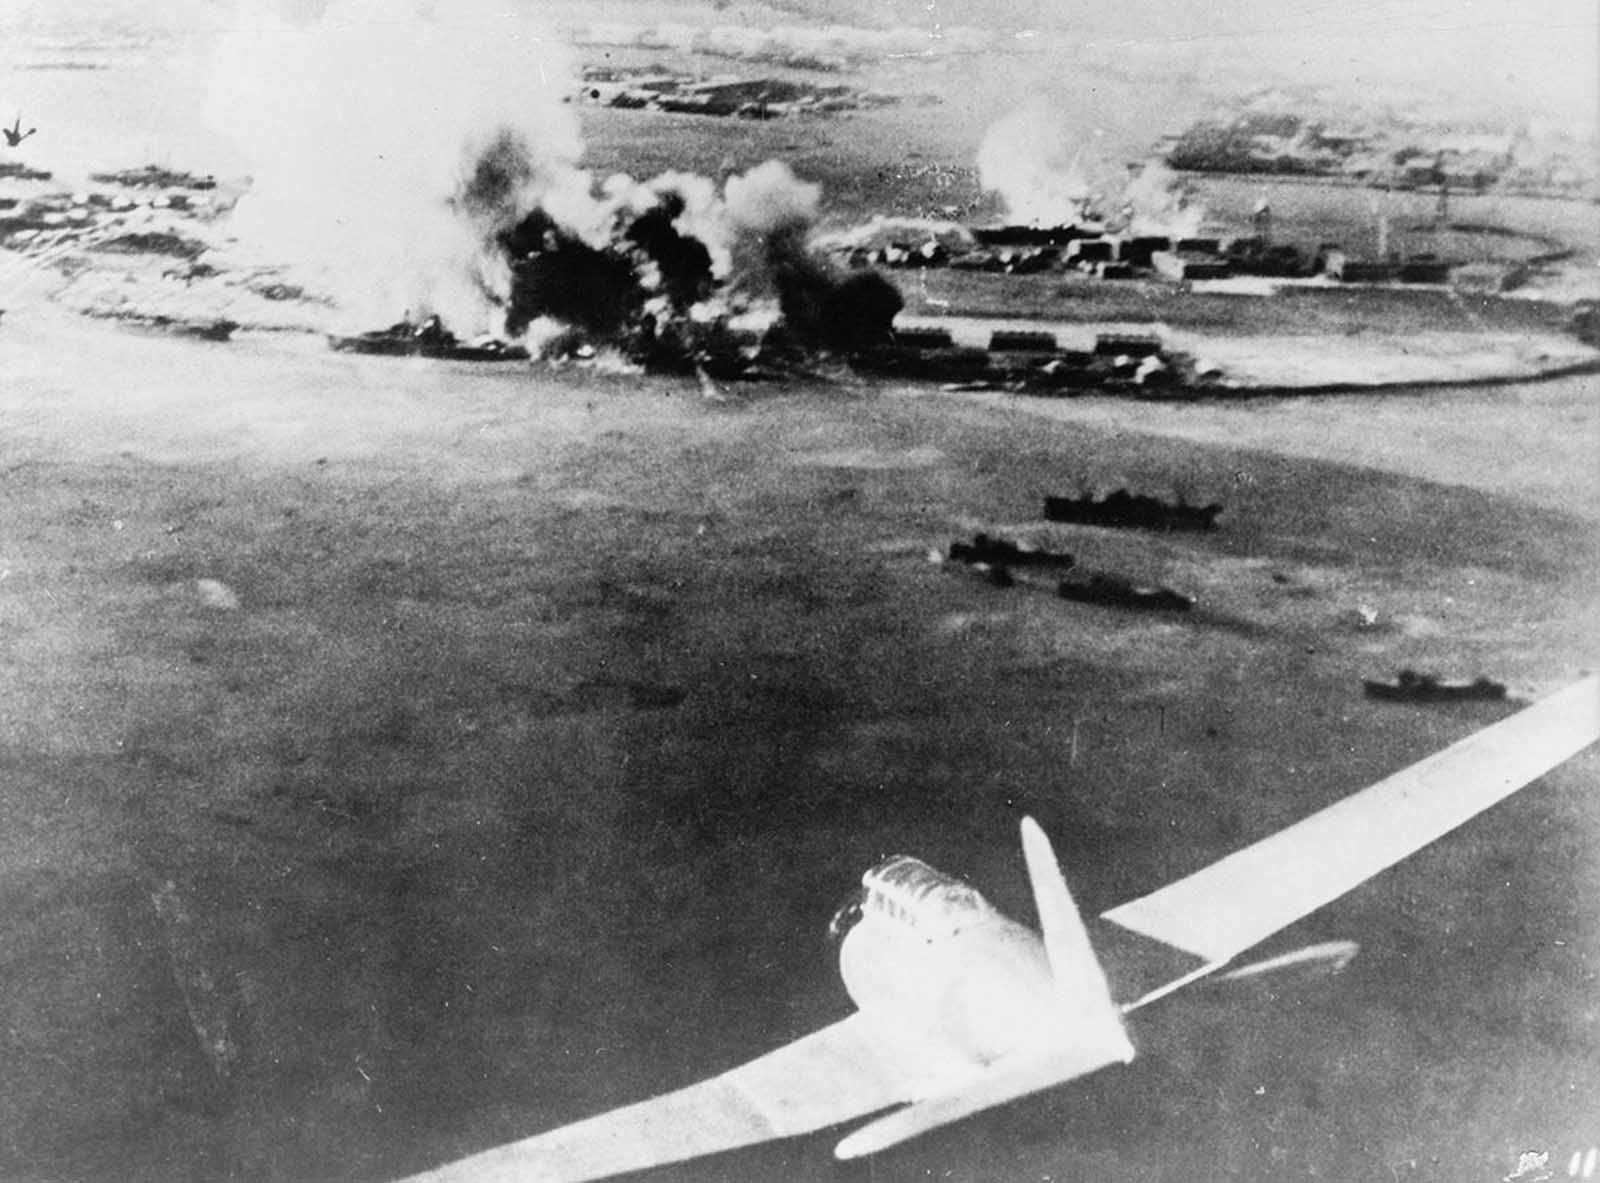 a report of the 1941 pearl harbor attack by japanese planes